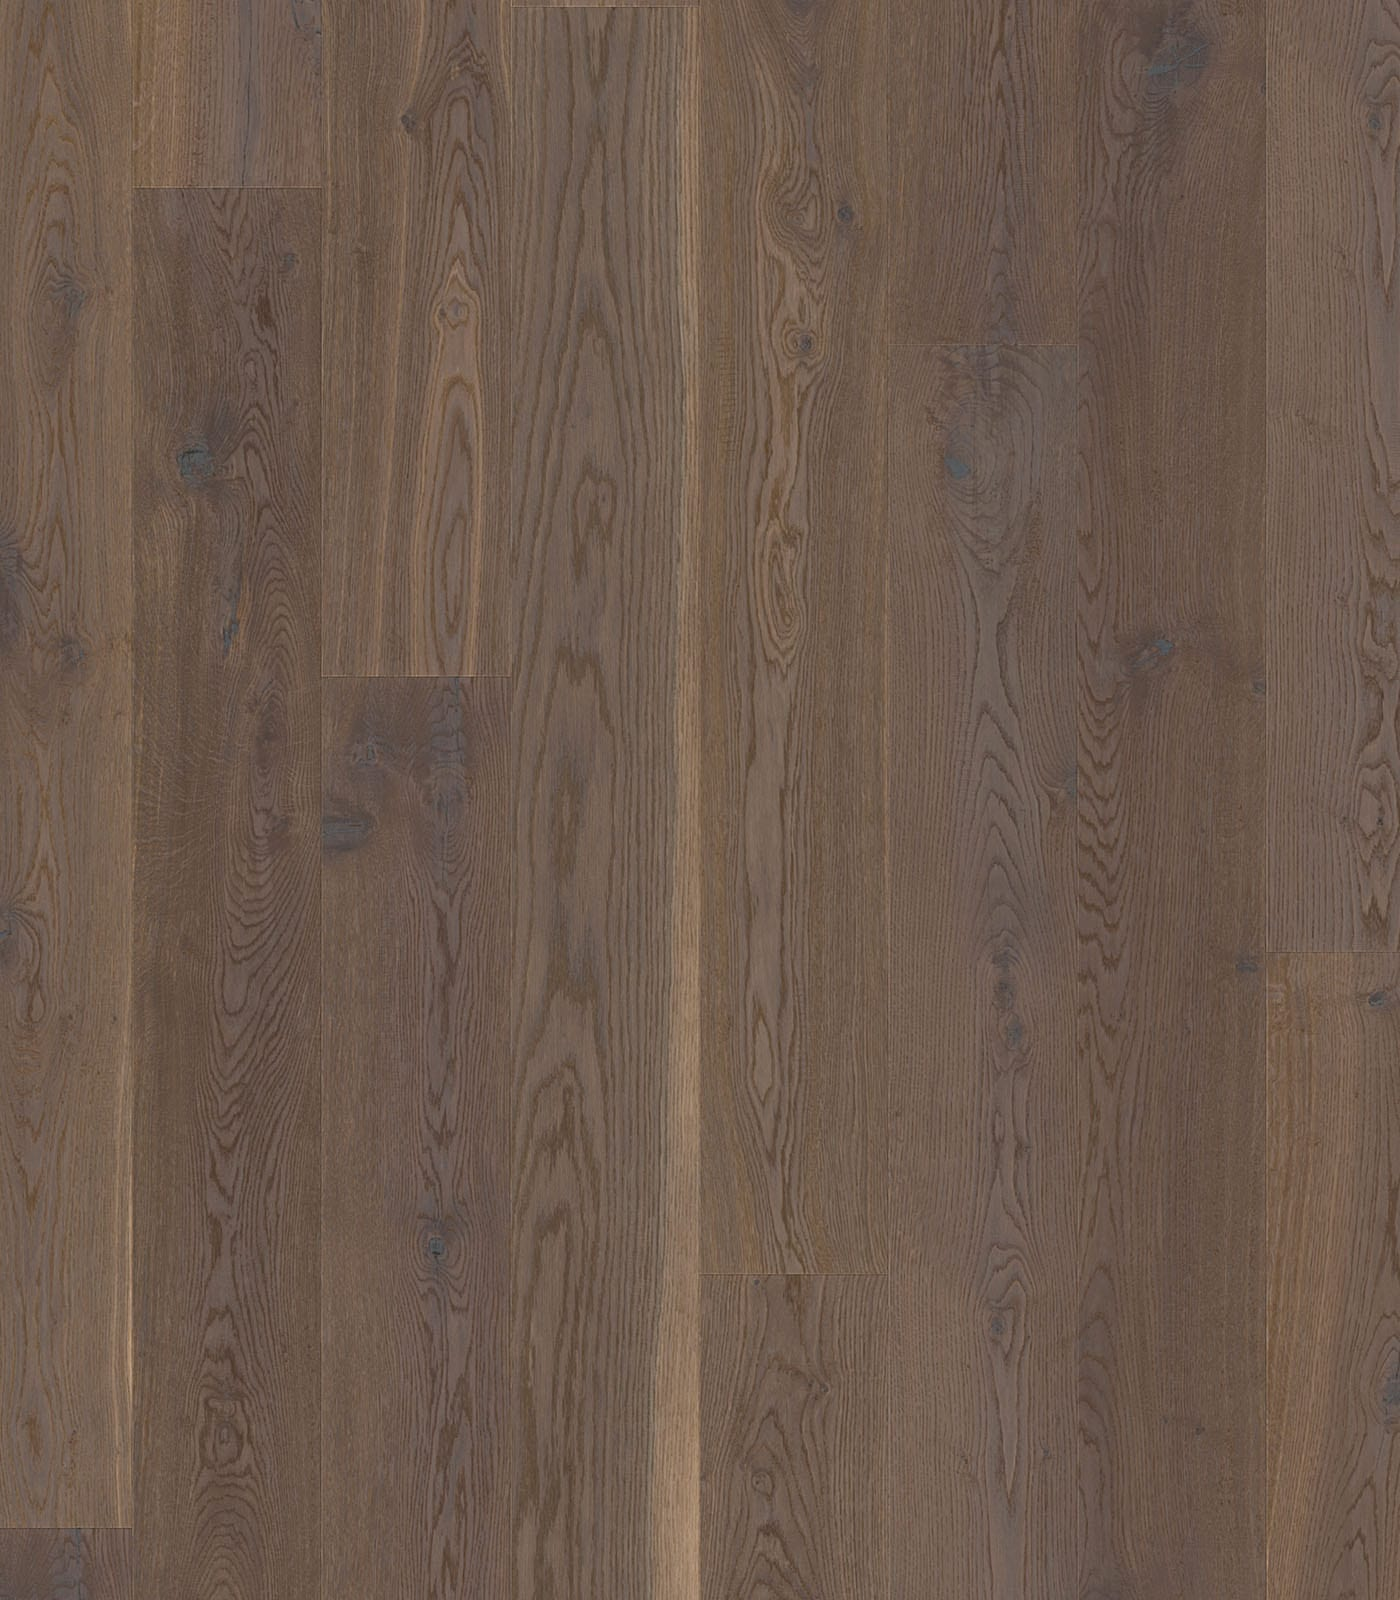 Watzmann-European Oak Floors-Antique Collection